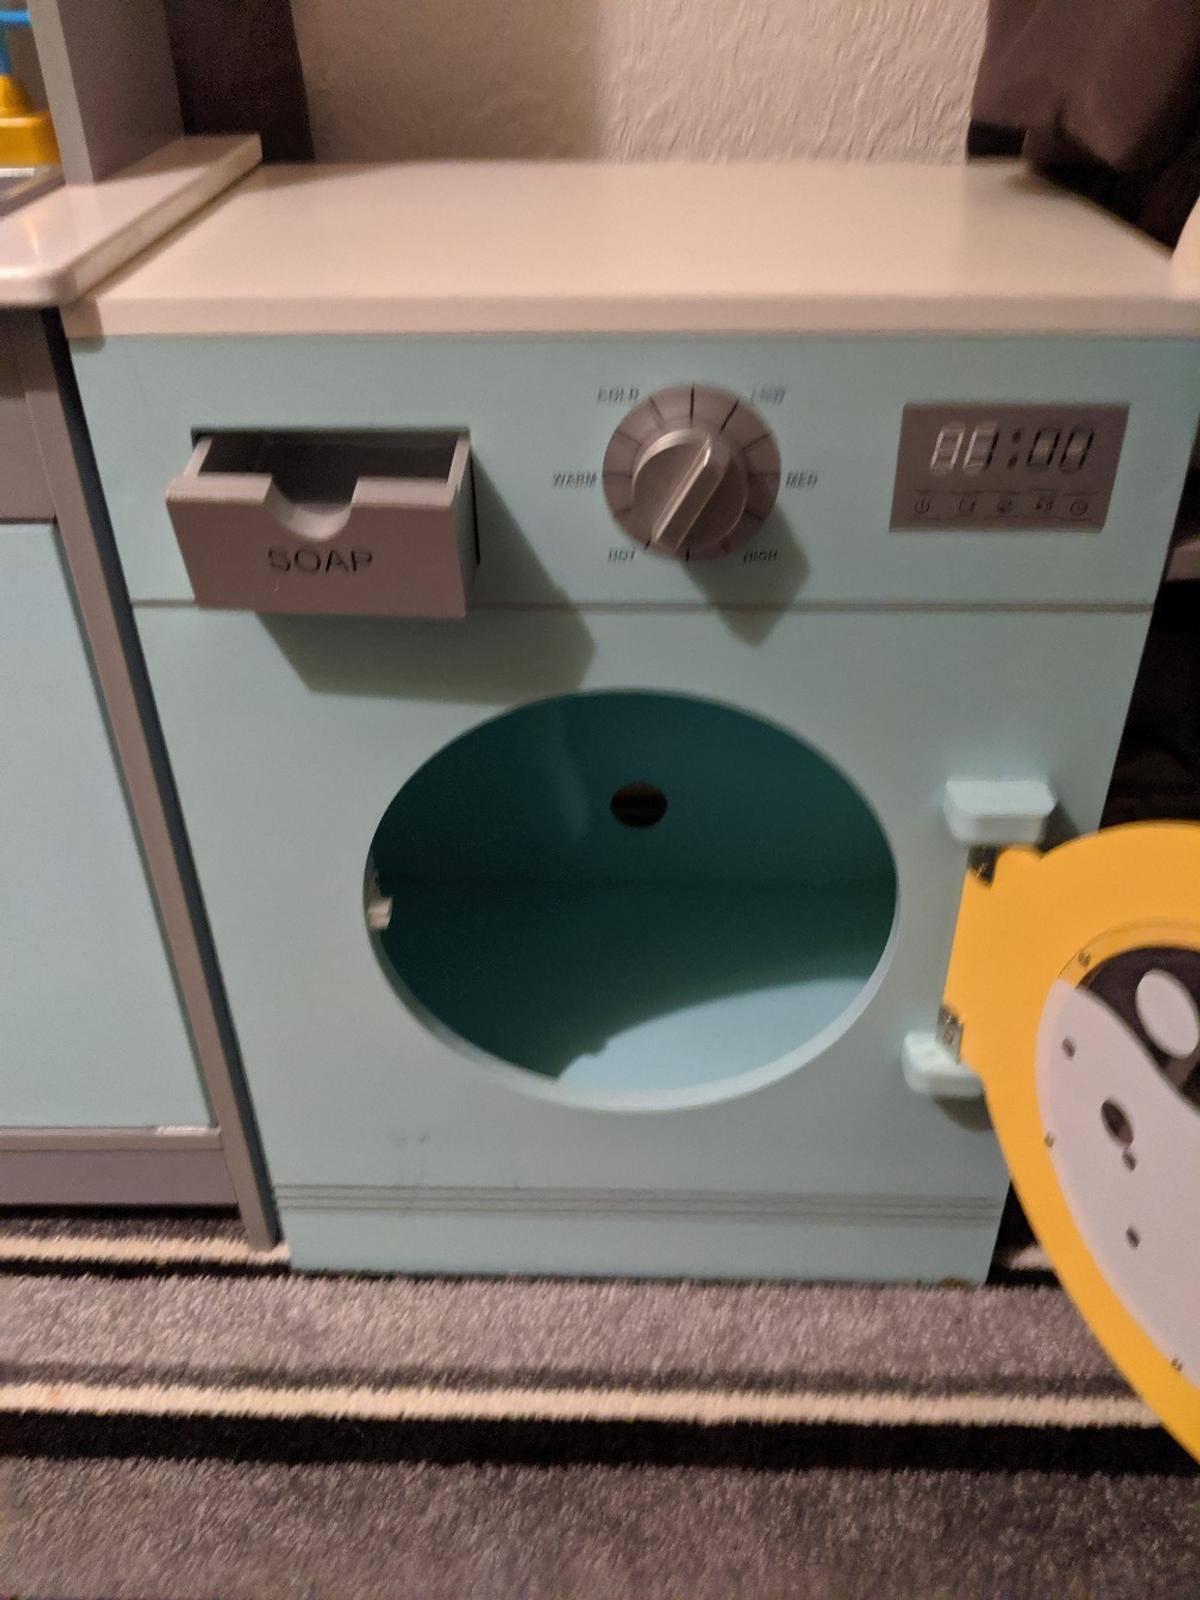 gorgeous child's wooden kitchen plus washing machine both in lovely condition. see all pictures. kitchen measures 3 ft 1 ins high/nearly 2 ft long. washing machine is 1 ft 8 ins high/1 ft 3 ins long. £20 for both. (( no accessories)). washing machine alone was £25. no offers thanks.